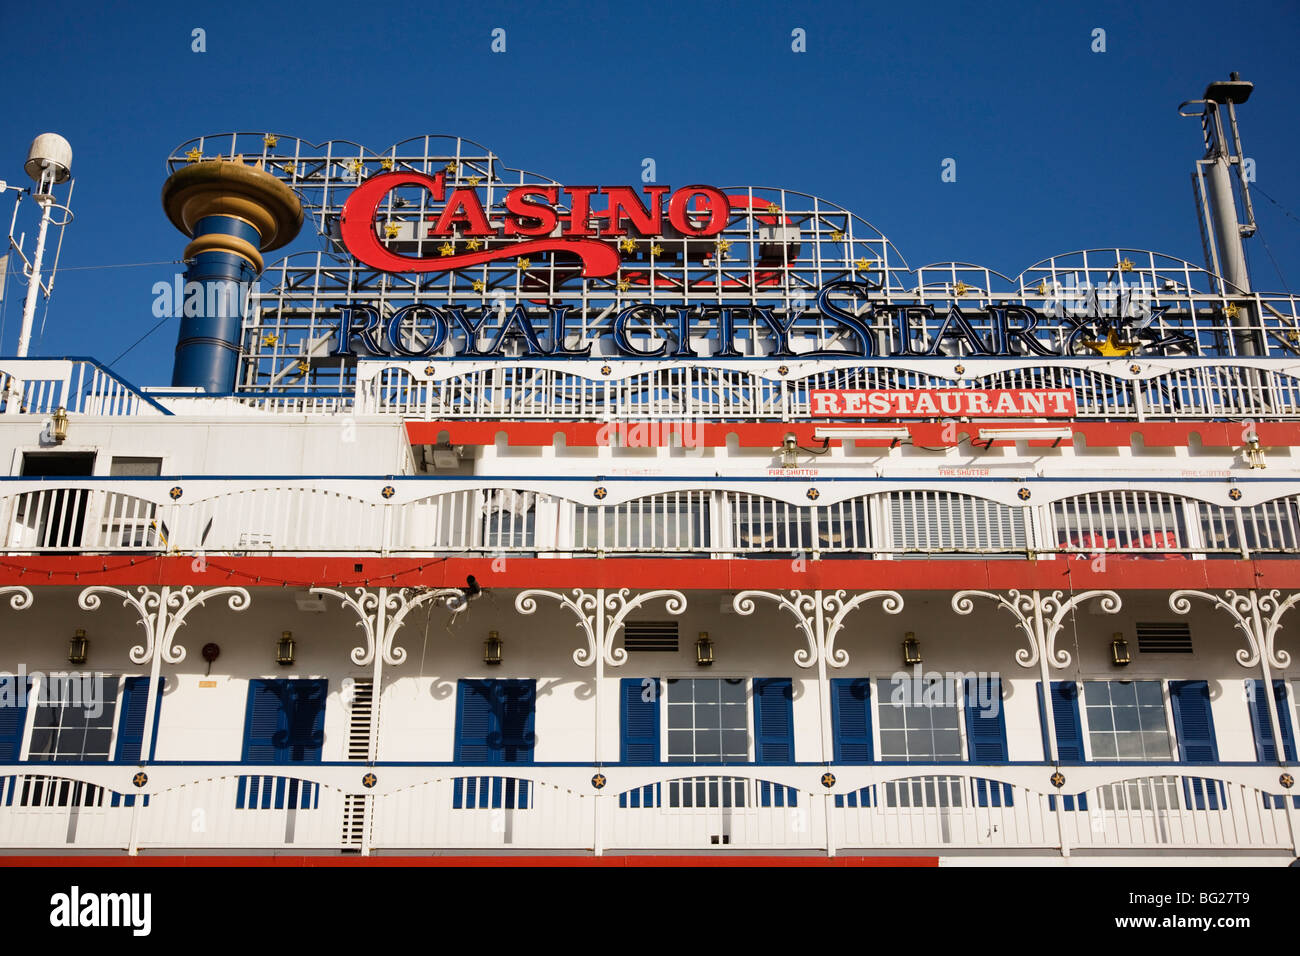 River boat casino new westminster turnkey internet casino business